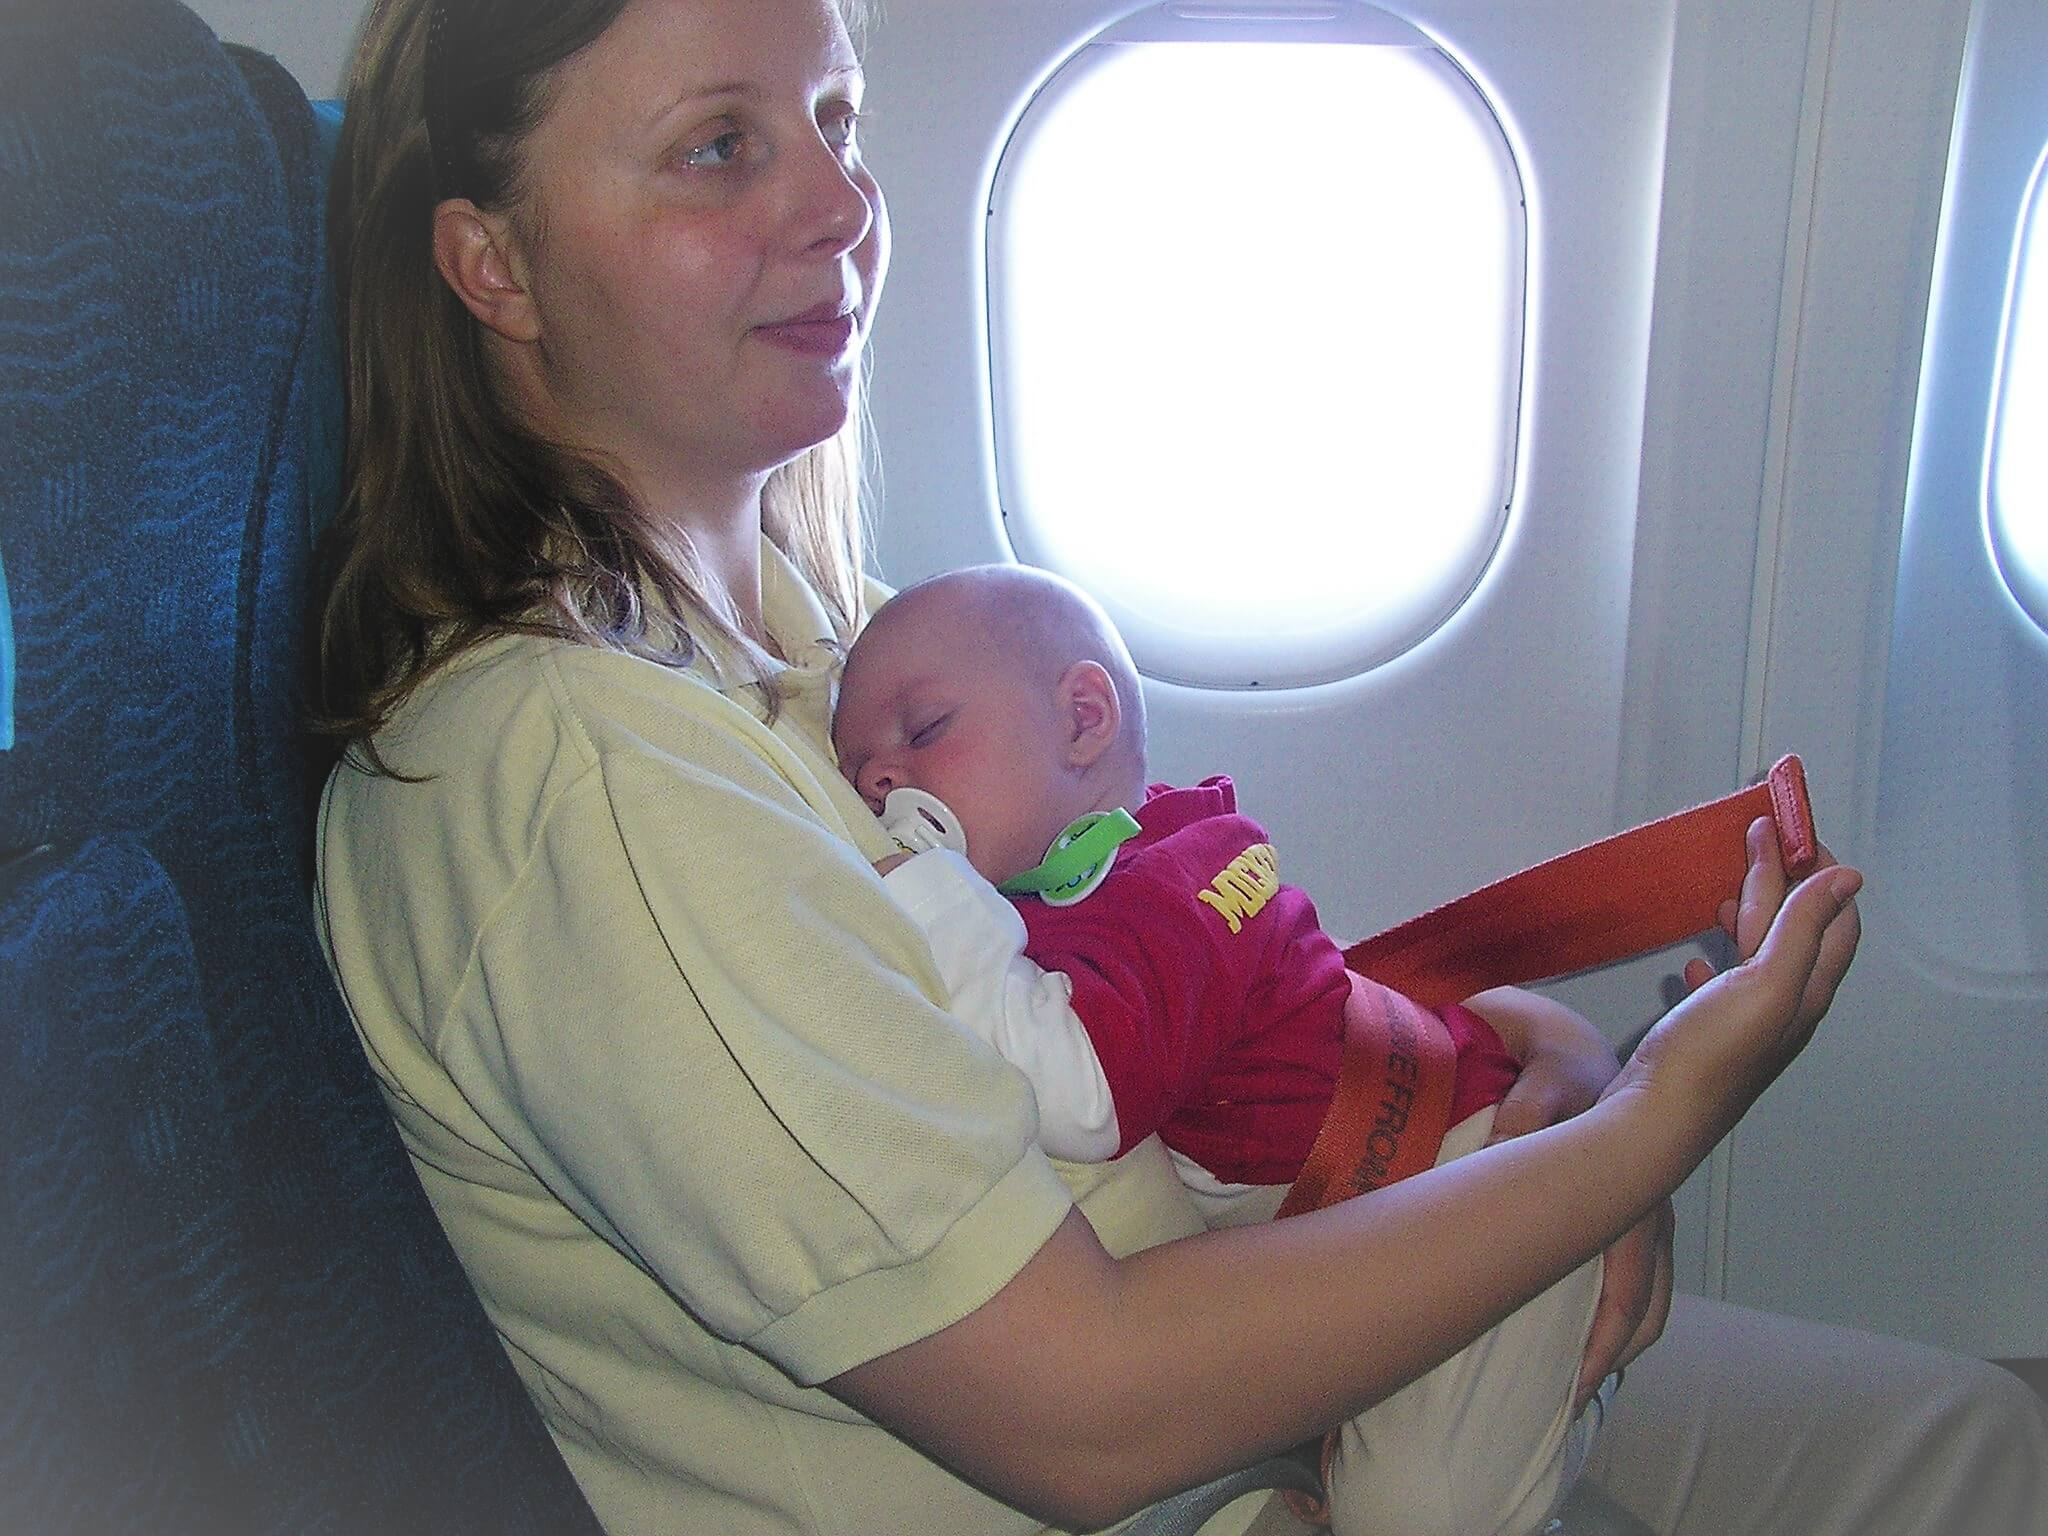 Infant in airplane